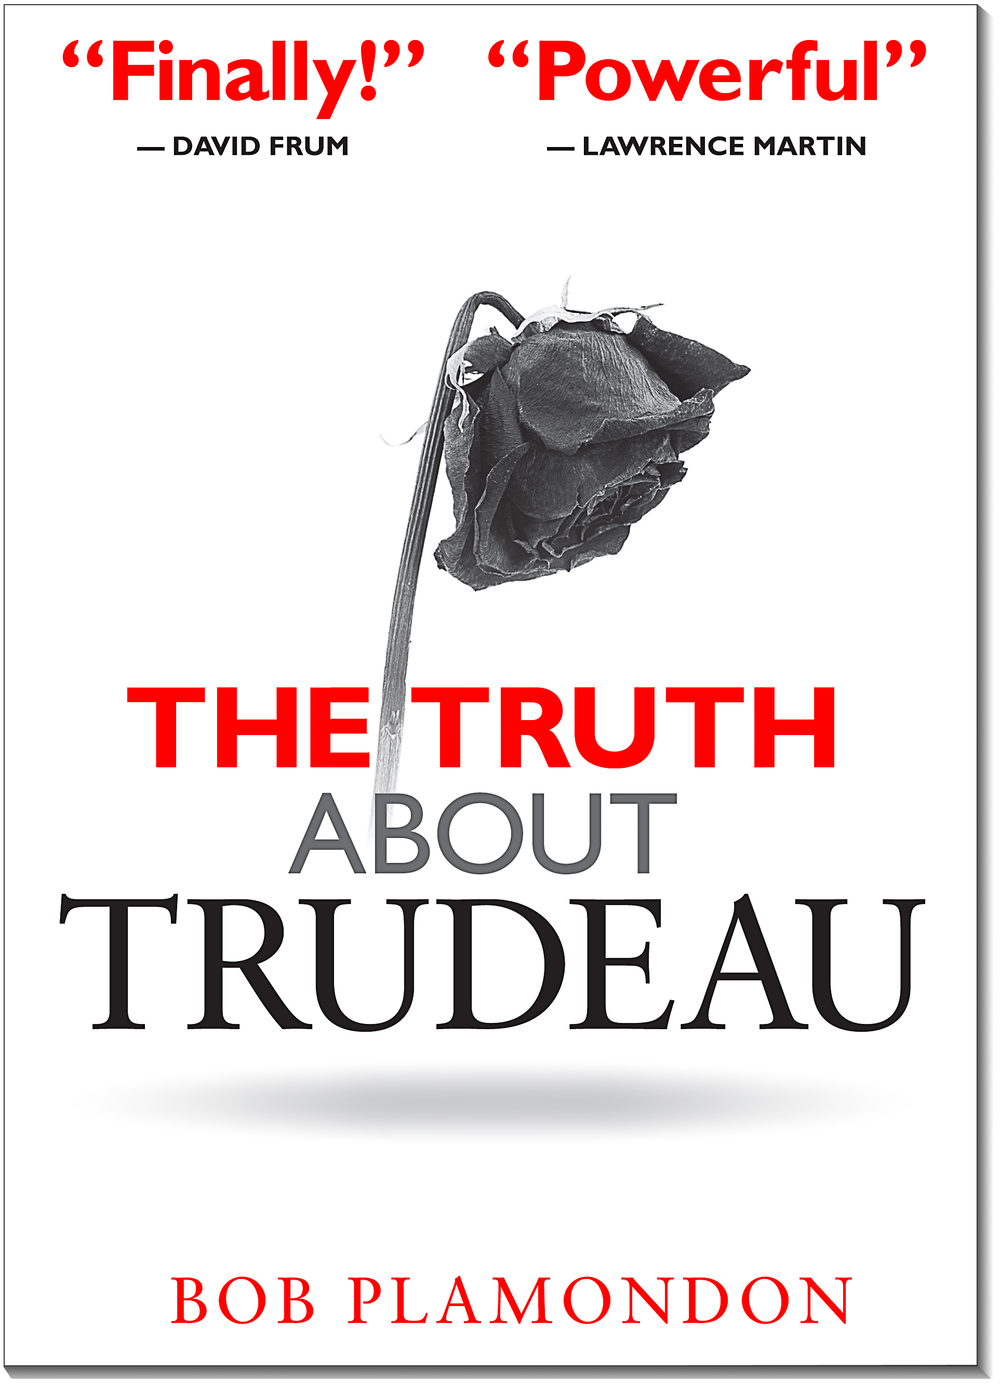 book-cover-the-truth-about-trudeau.jpg